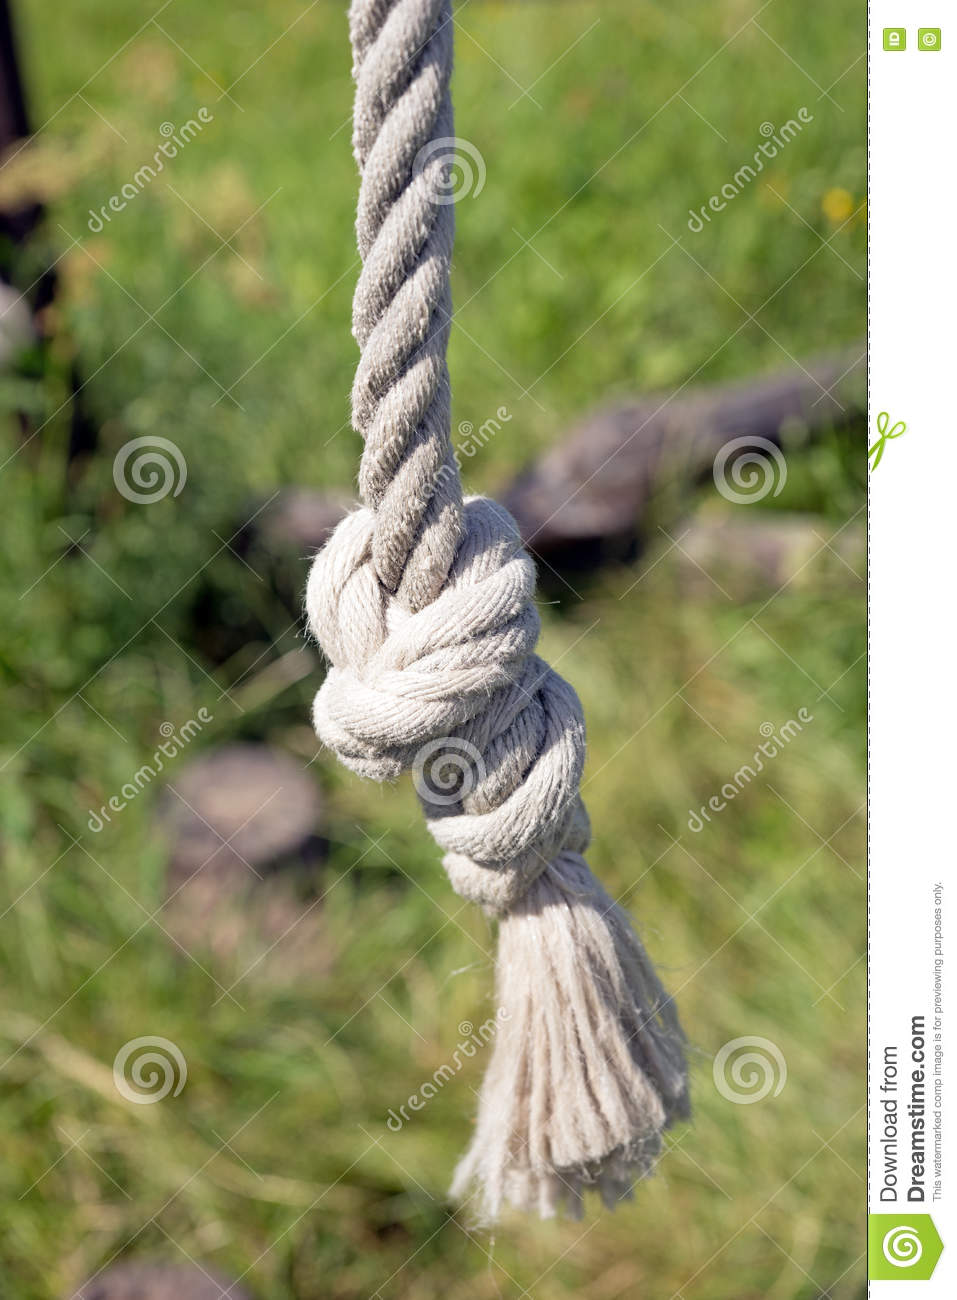 Knot At The End Of The Rope Stock Image - Image of concepts